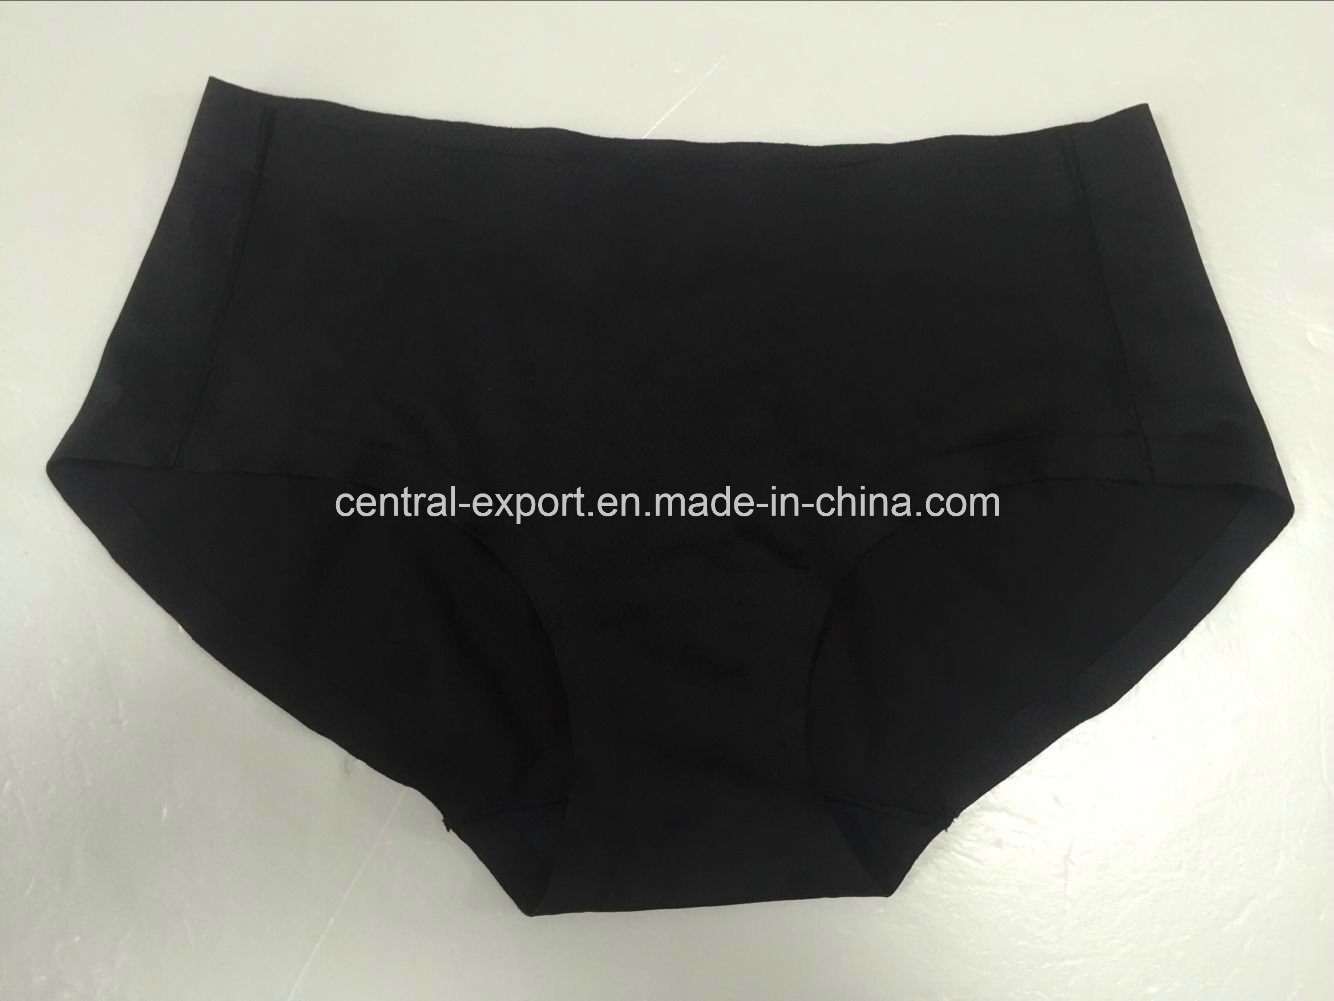 Classical Sexy Lady Non Trace Underwear Seamless Panty Brief